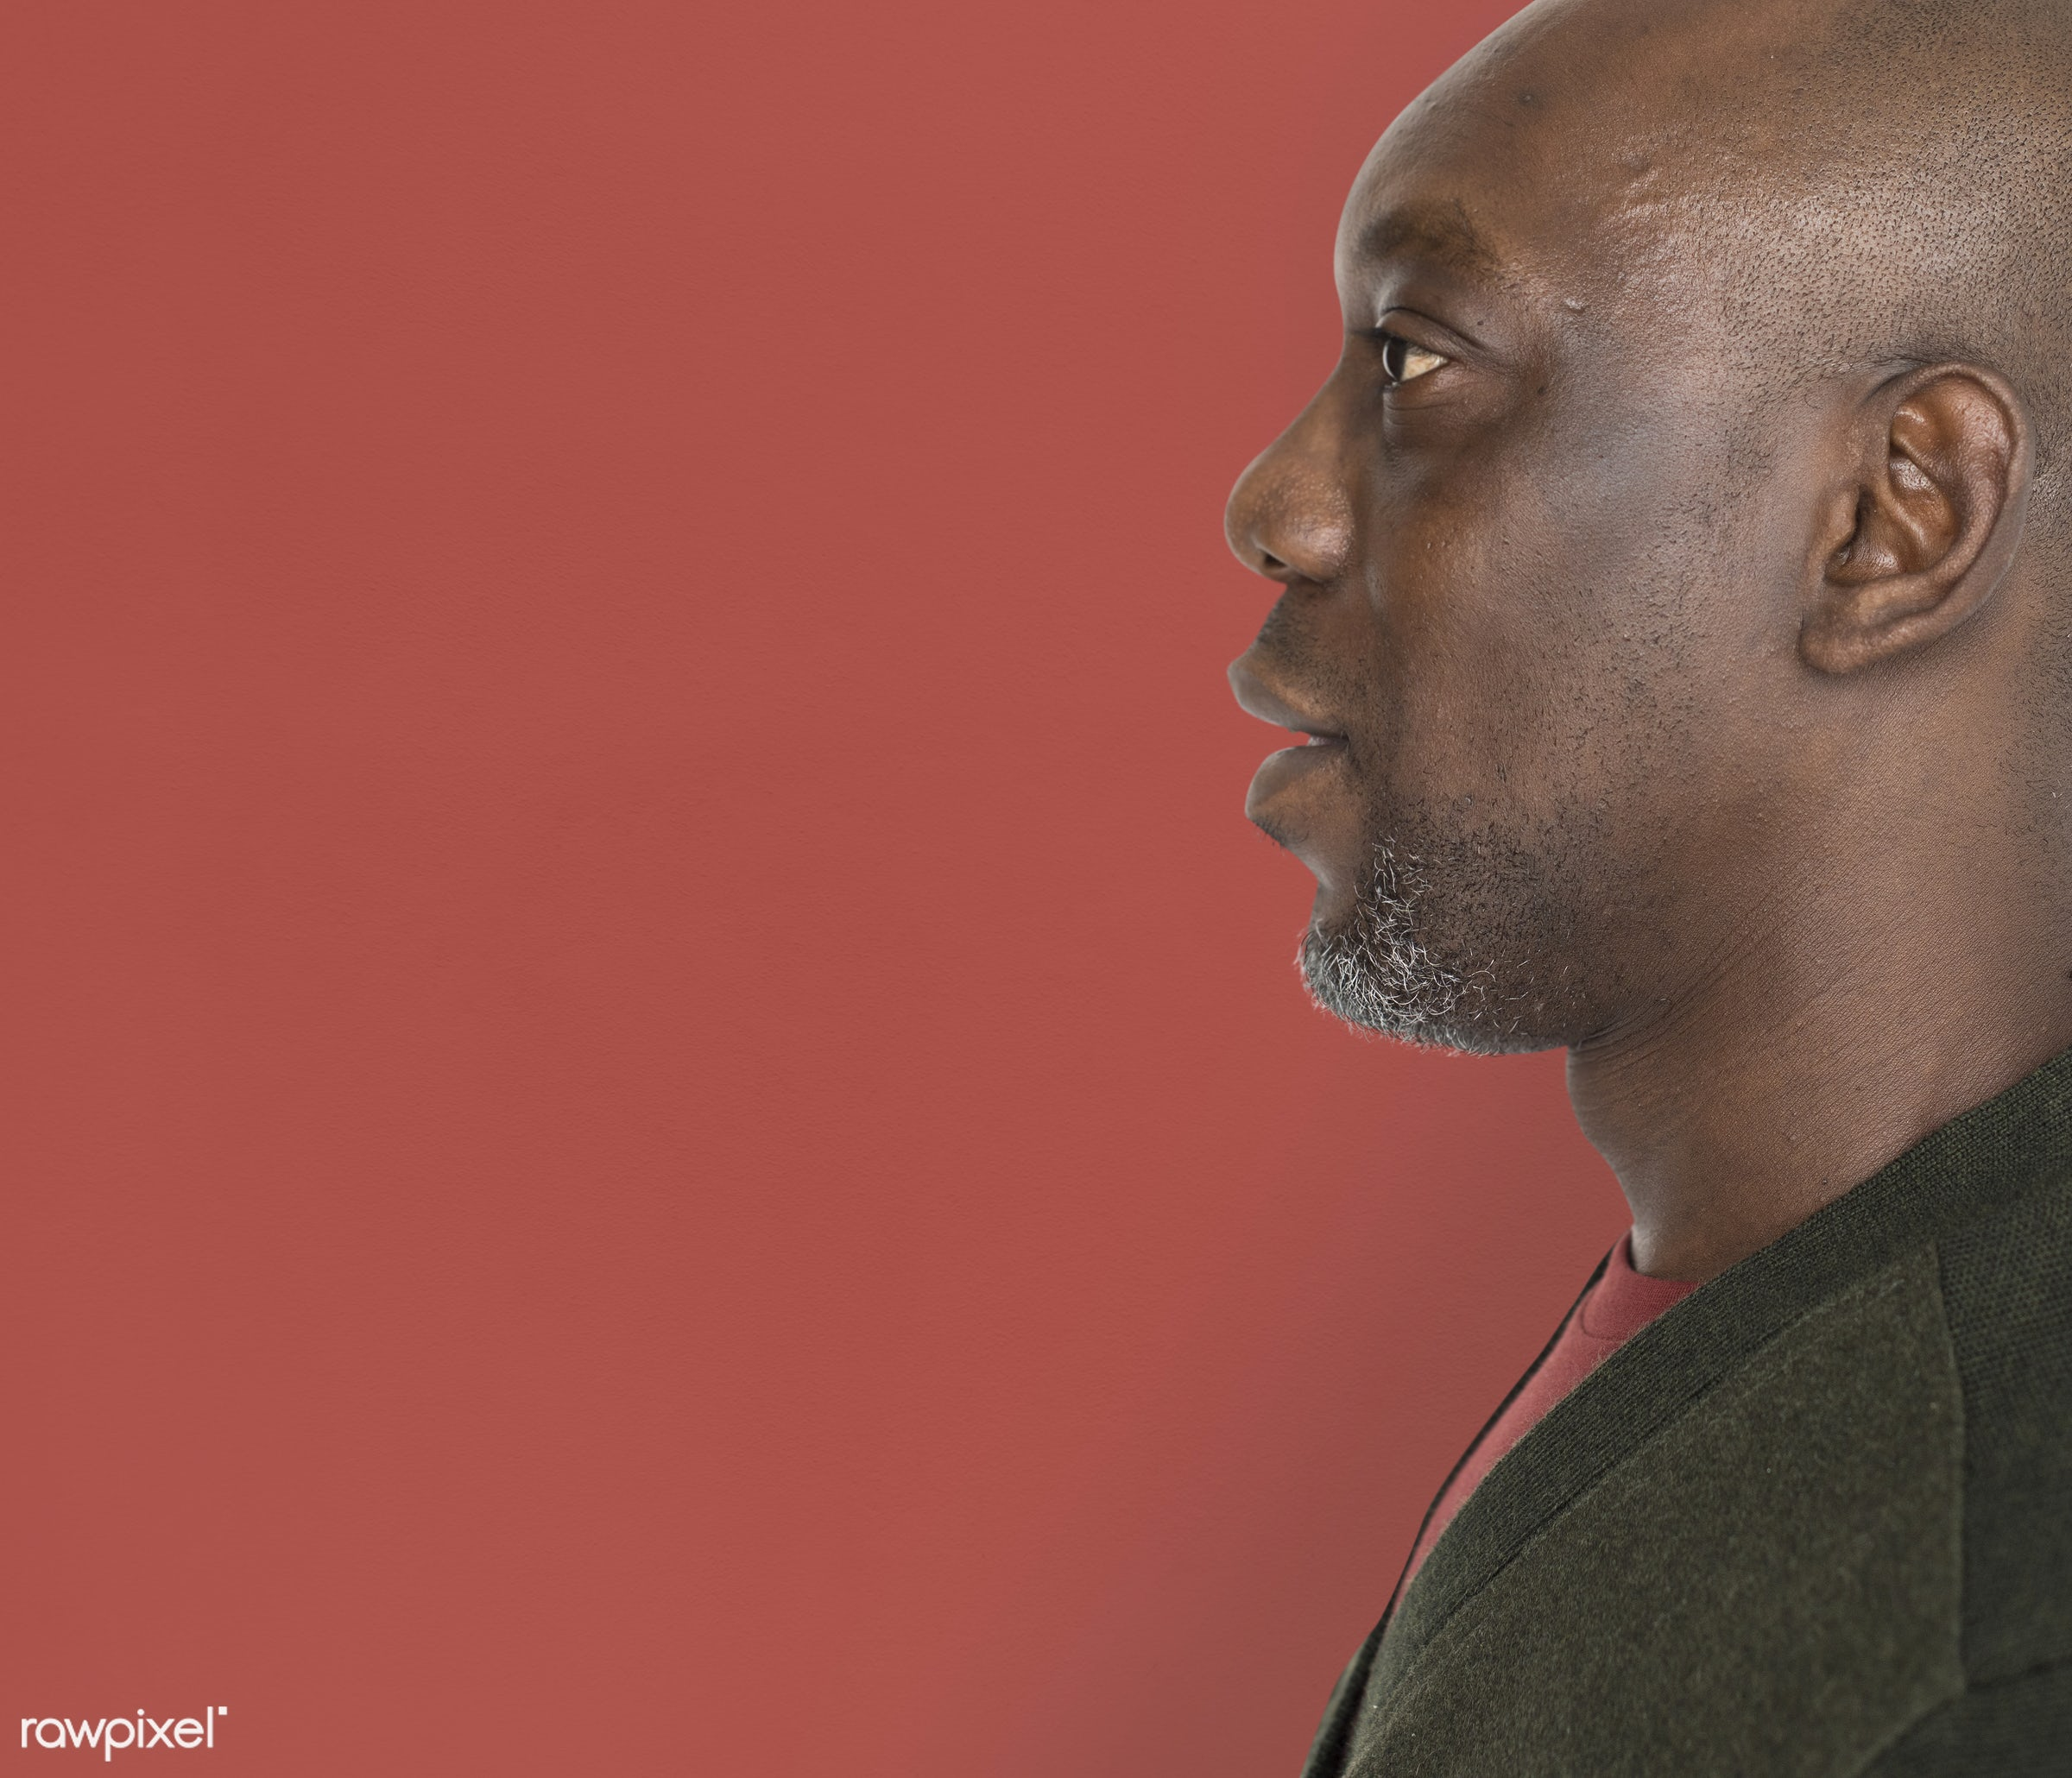 expression, person, side view, people, side, casual, side facing, man, black, casual dressing, cool, isolated, african...